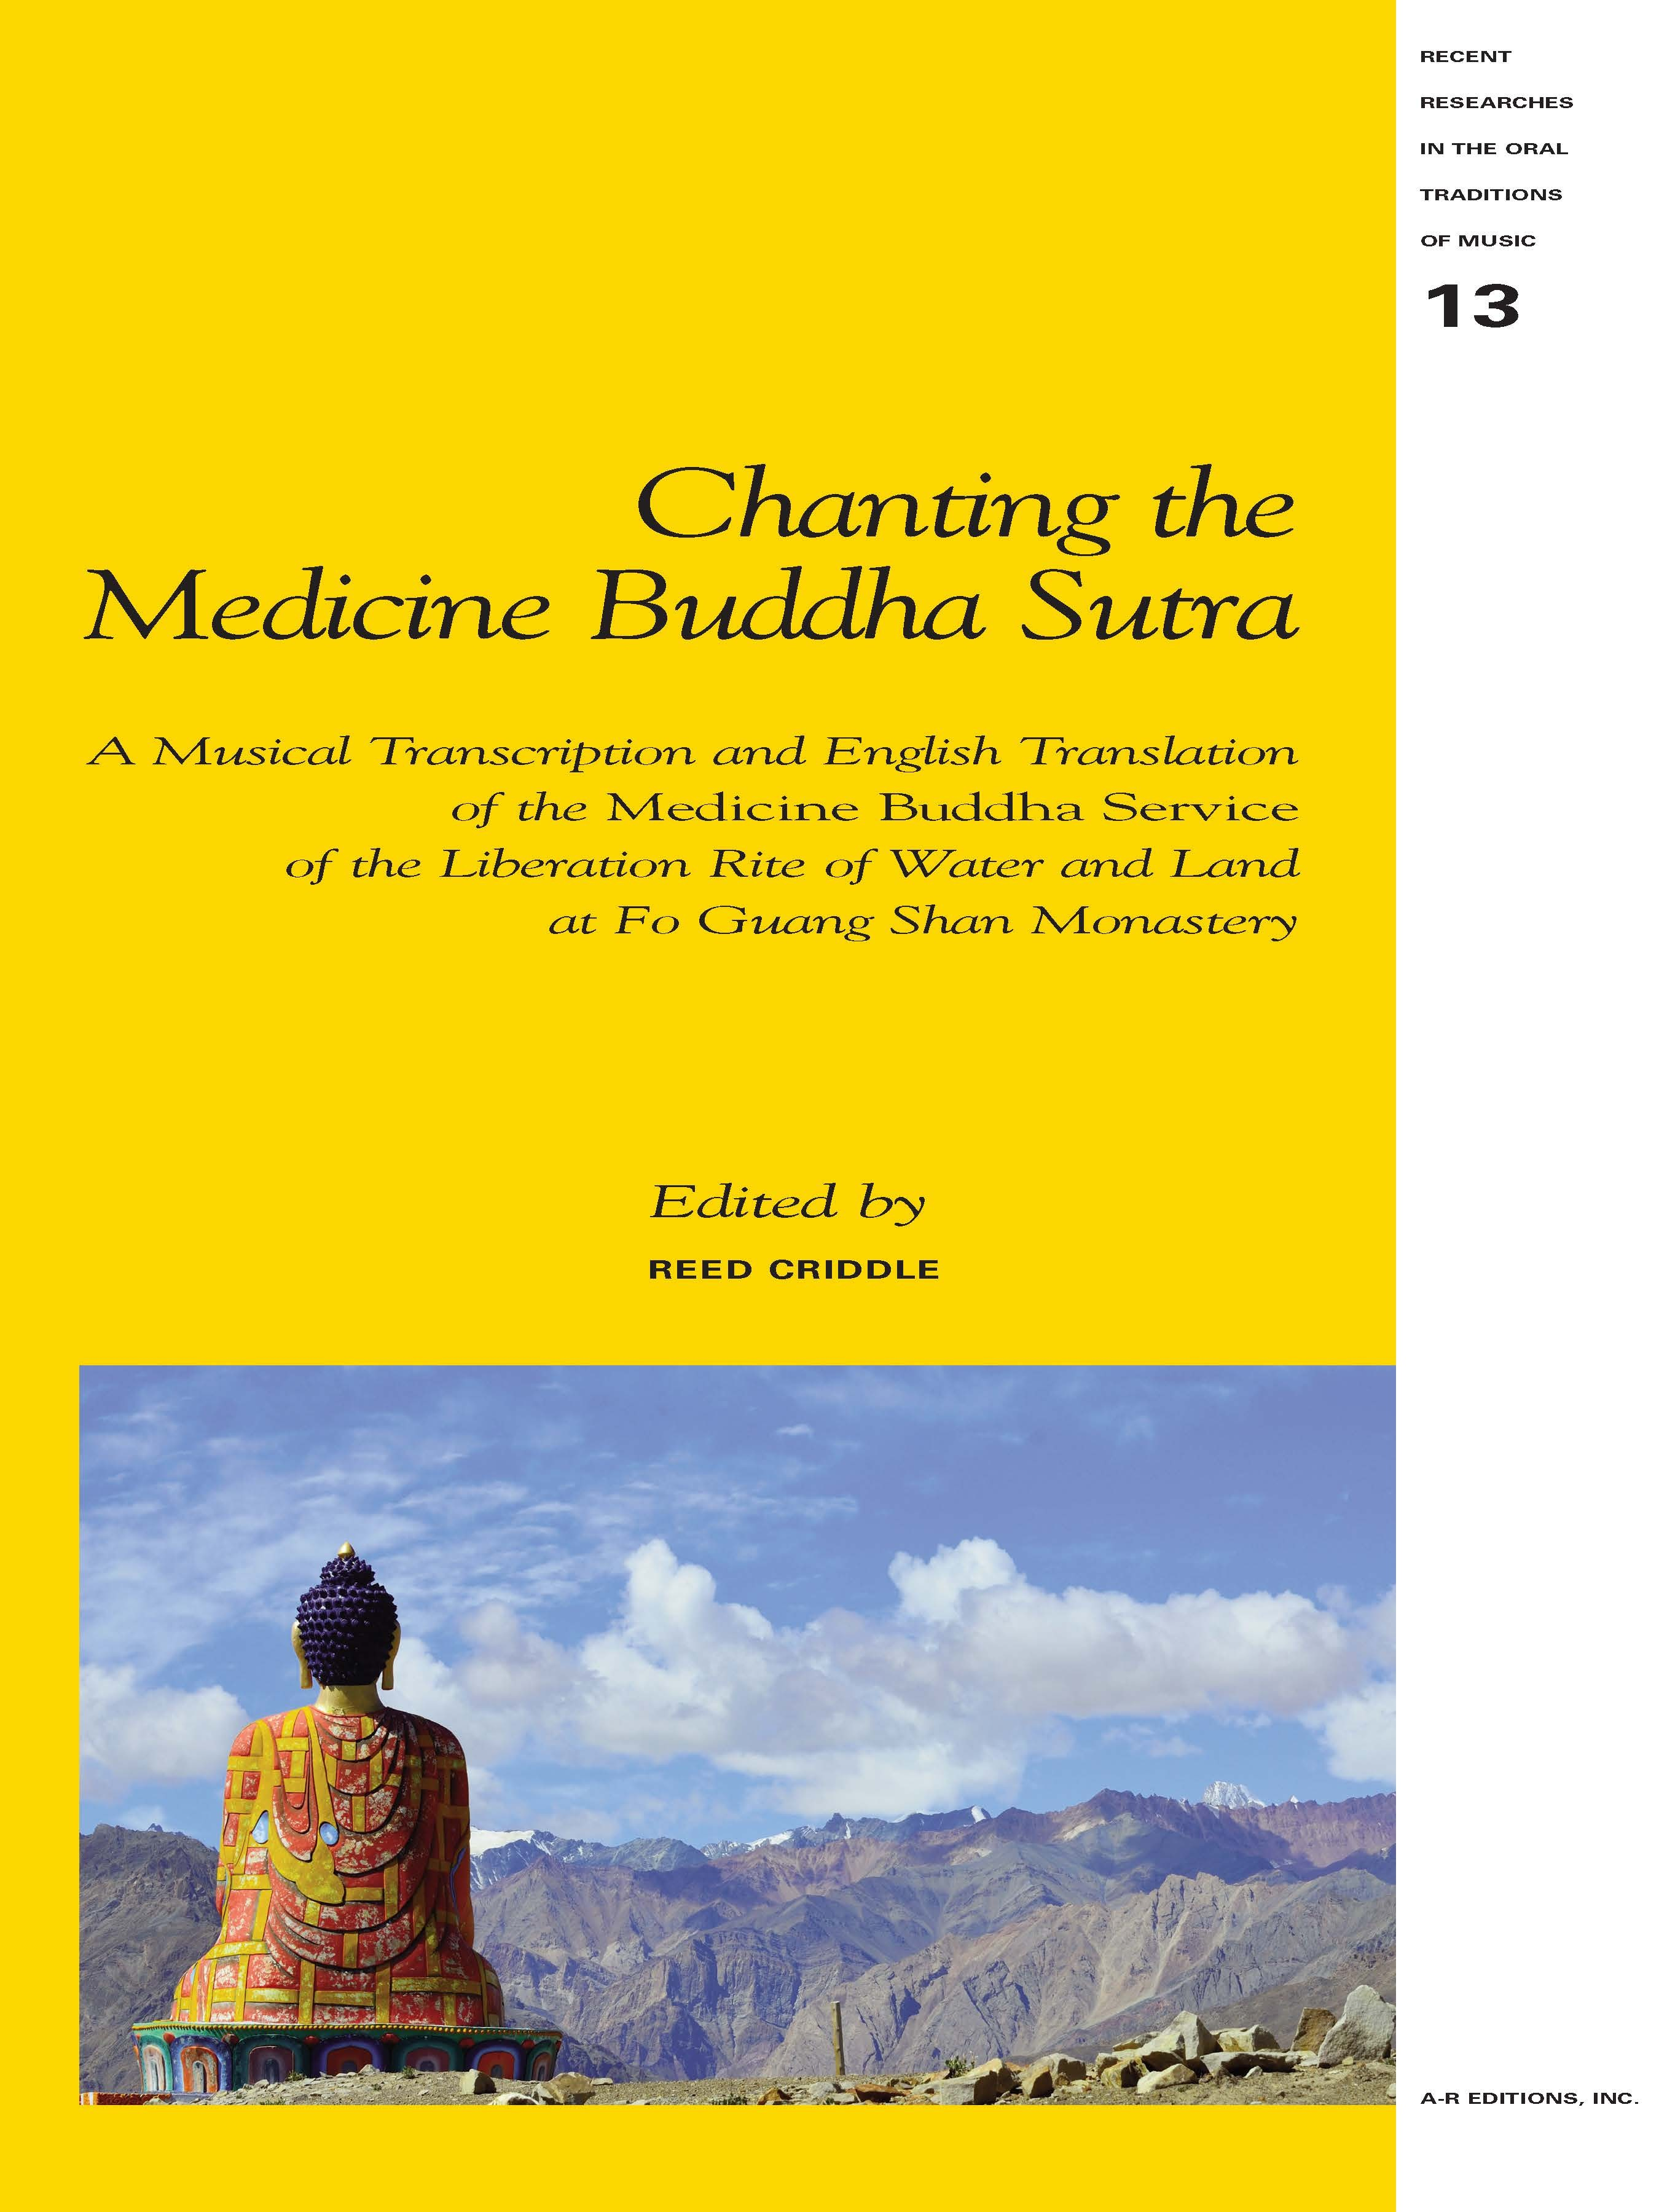 Chanting the Medicine Buddha Sutra